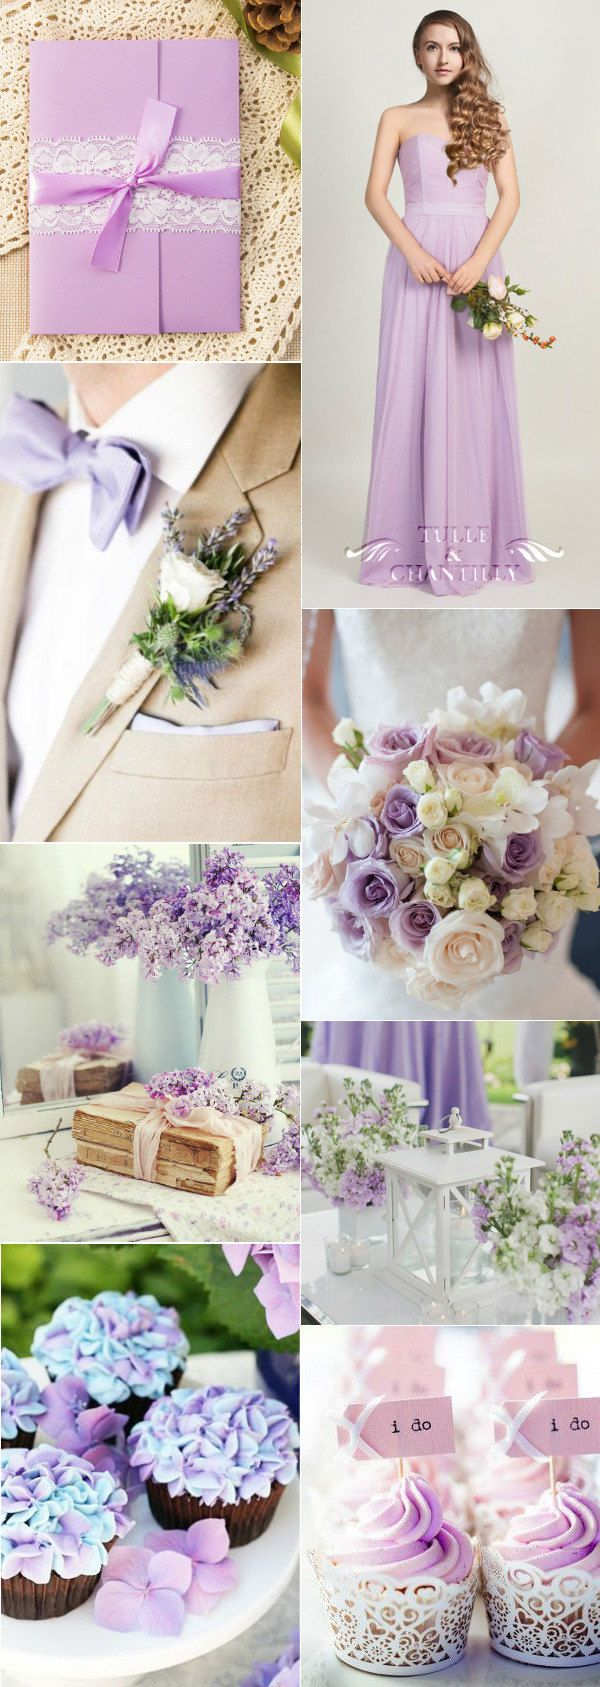 shabby-chic-lilac-light-purple-wedding-ideas.jpg 600×1,687 pixeles